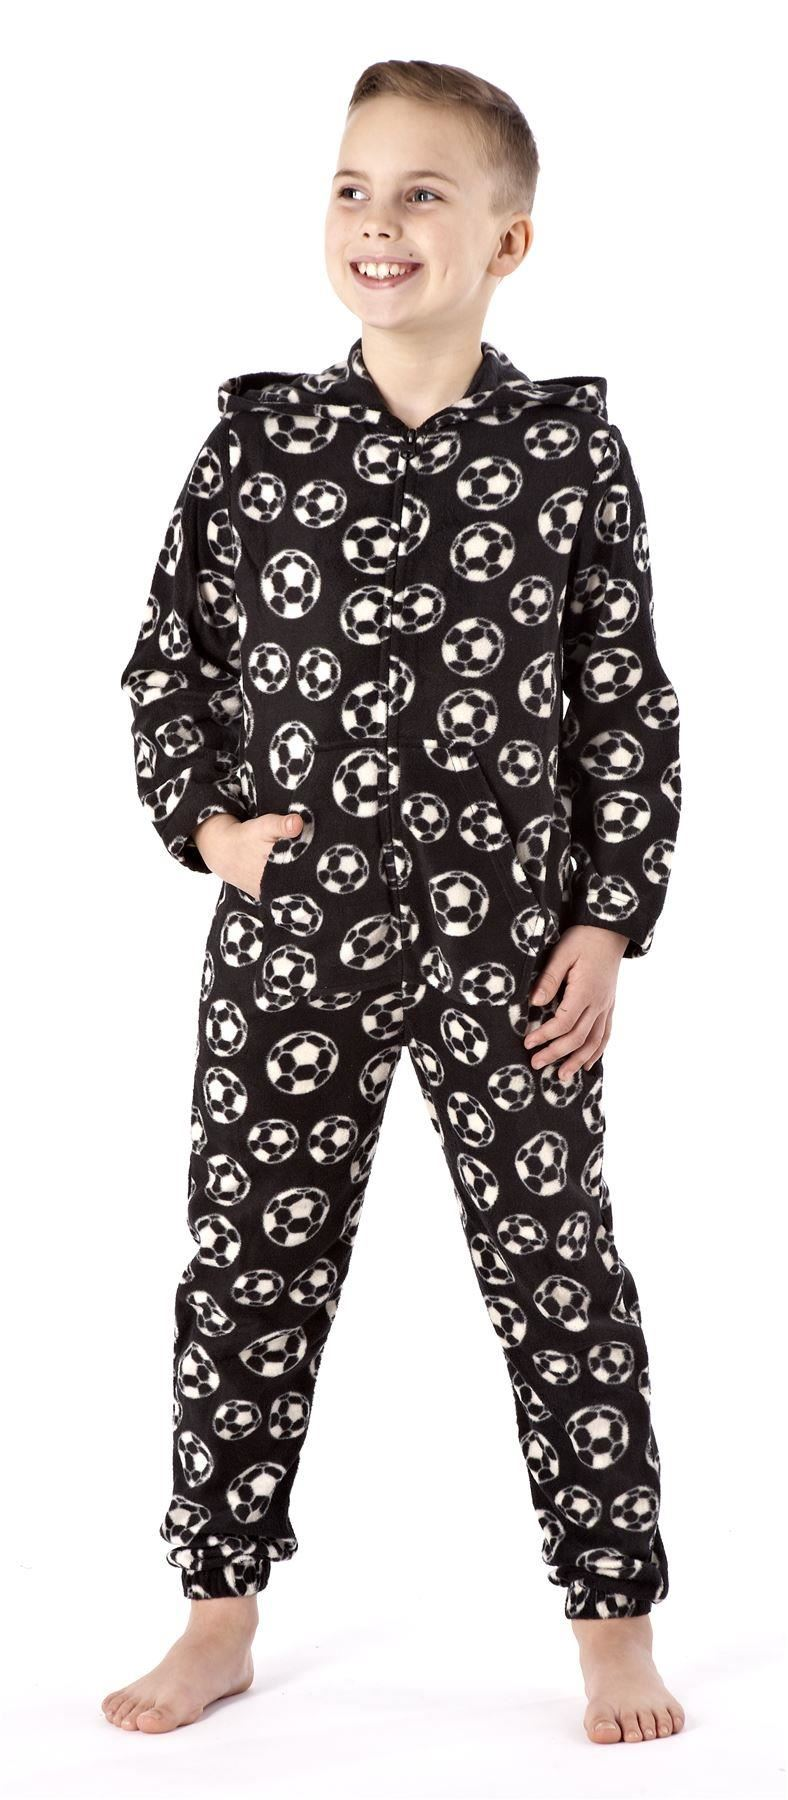 Find boys football pajamas at ShopStyle. Shop the latest collection of boys football pajamas from the most popular stores - all in one place.